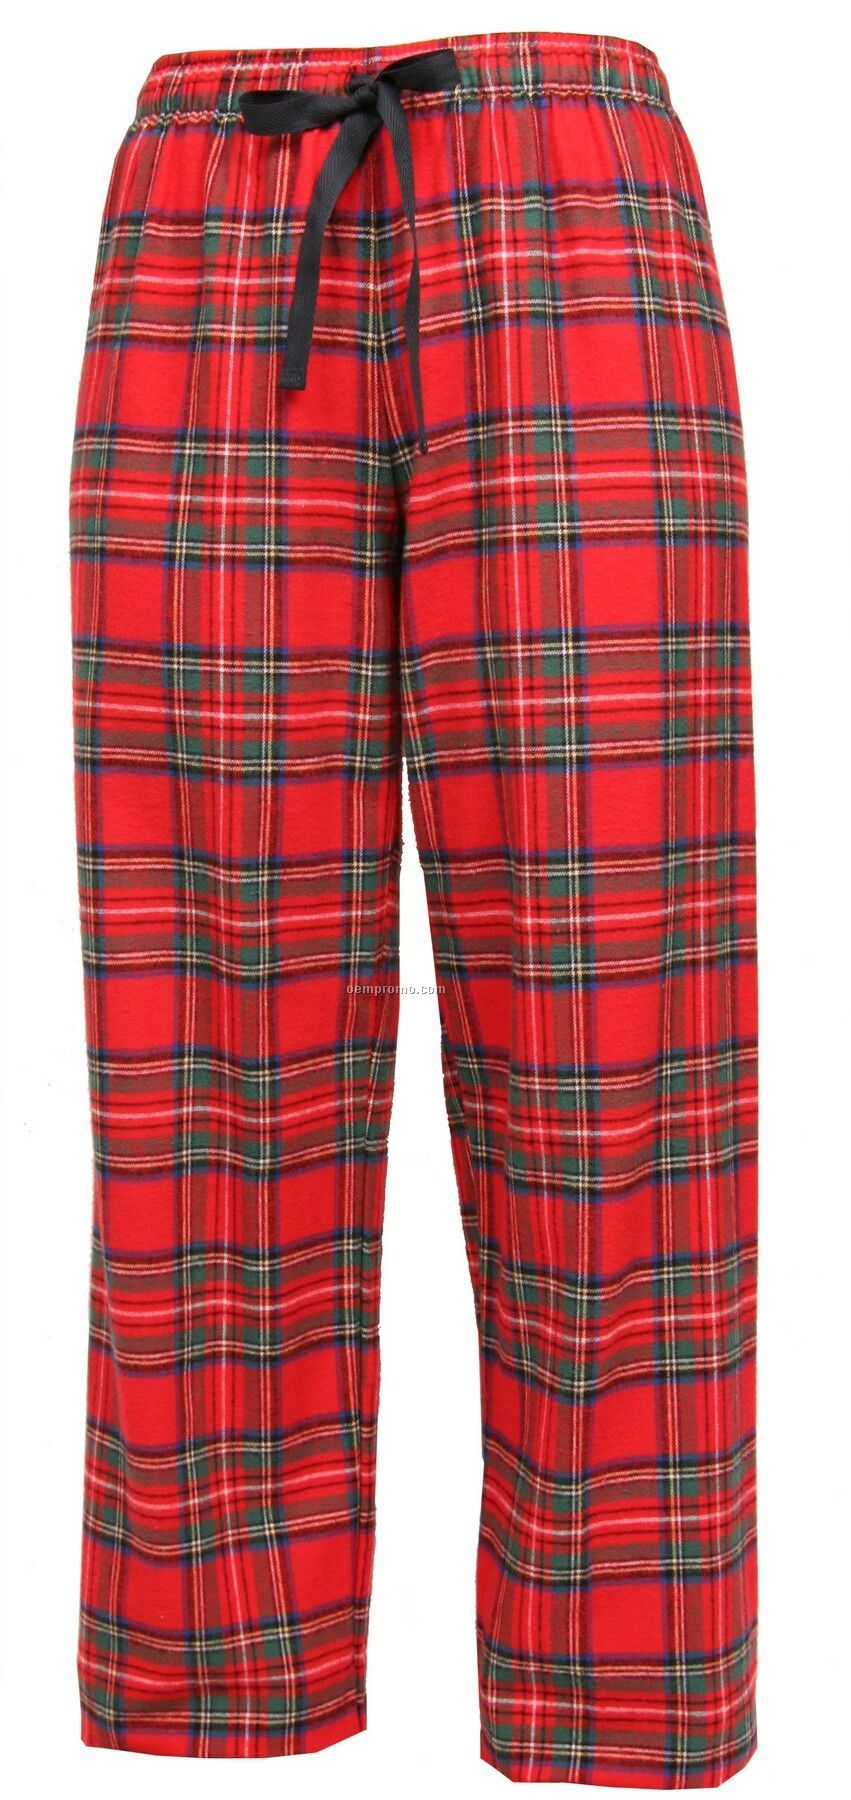 Adult Stewart Plaid Fashion Flannel Pant With Tie Cord